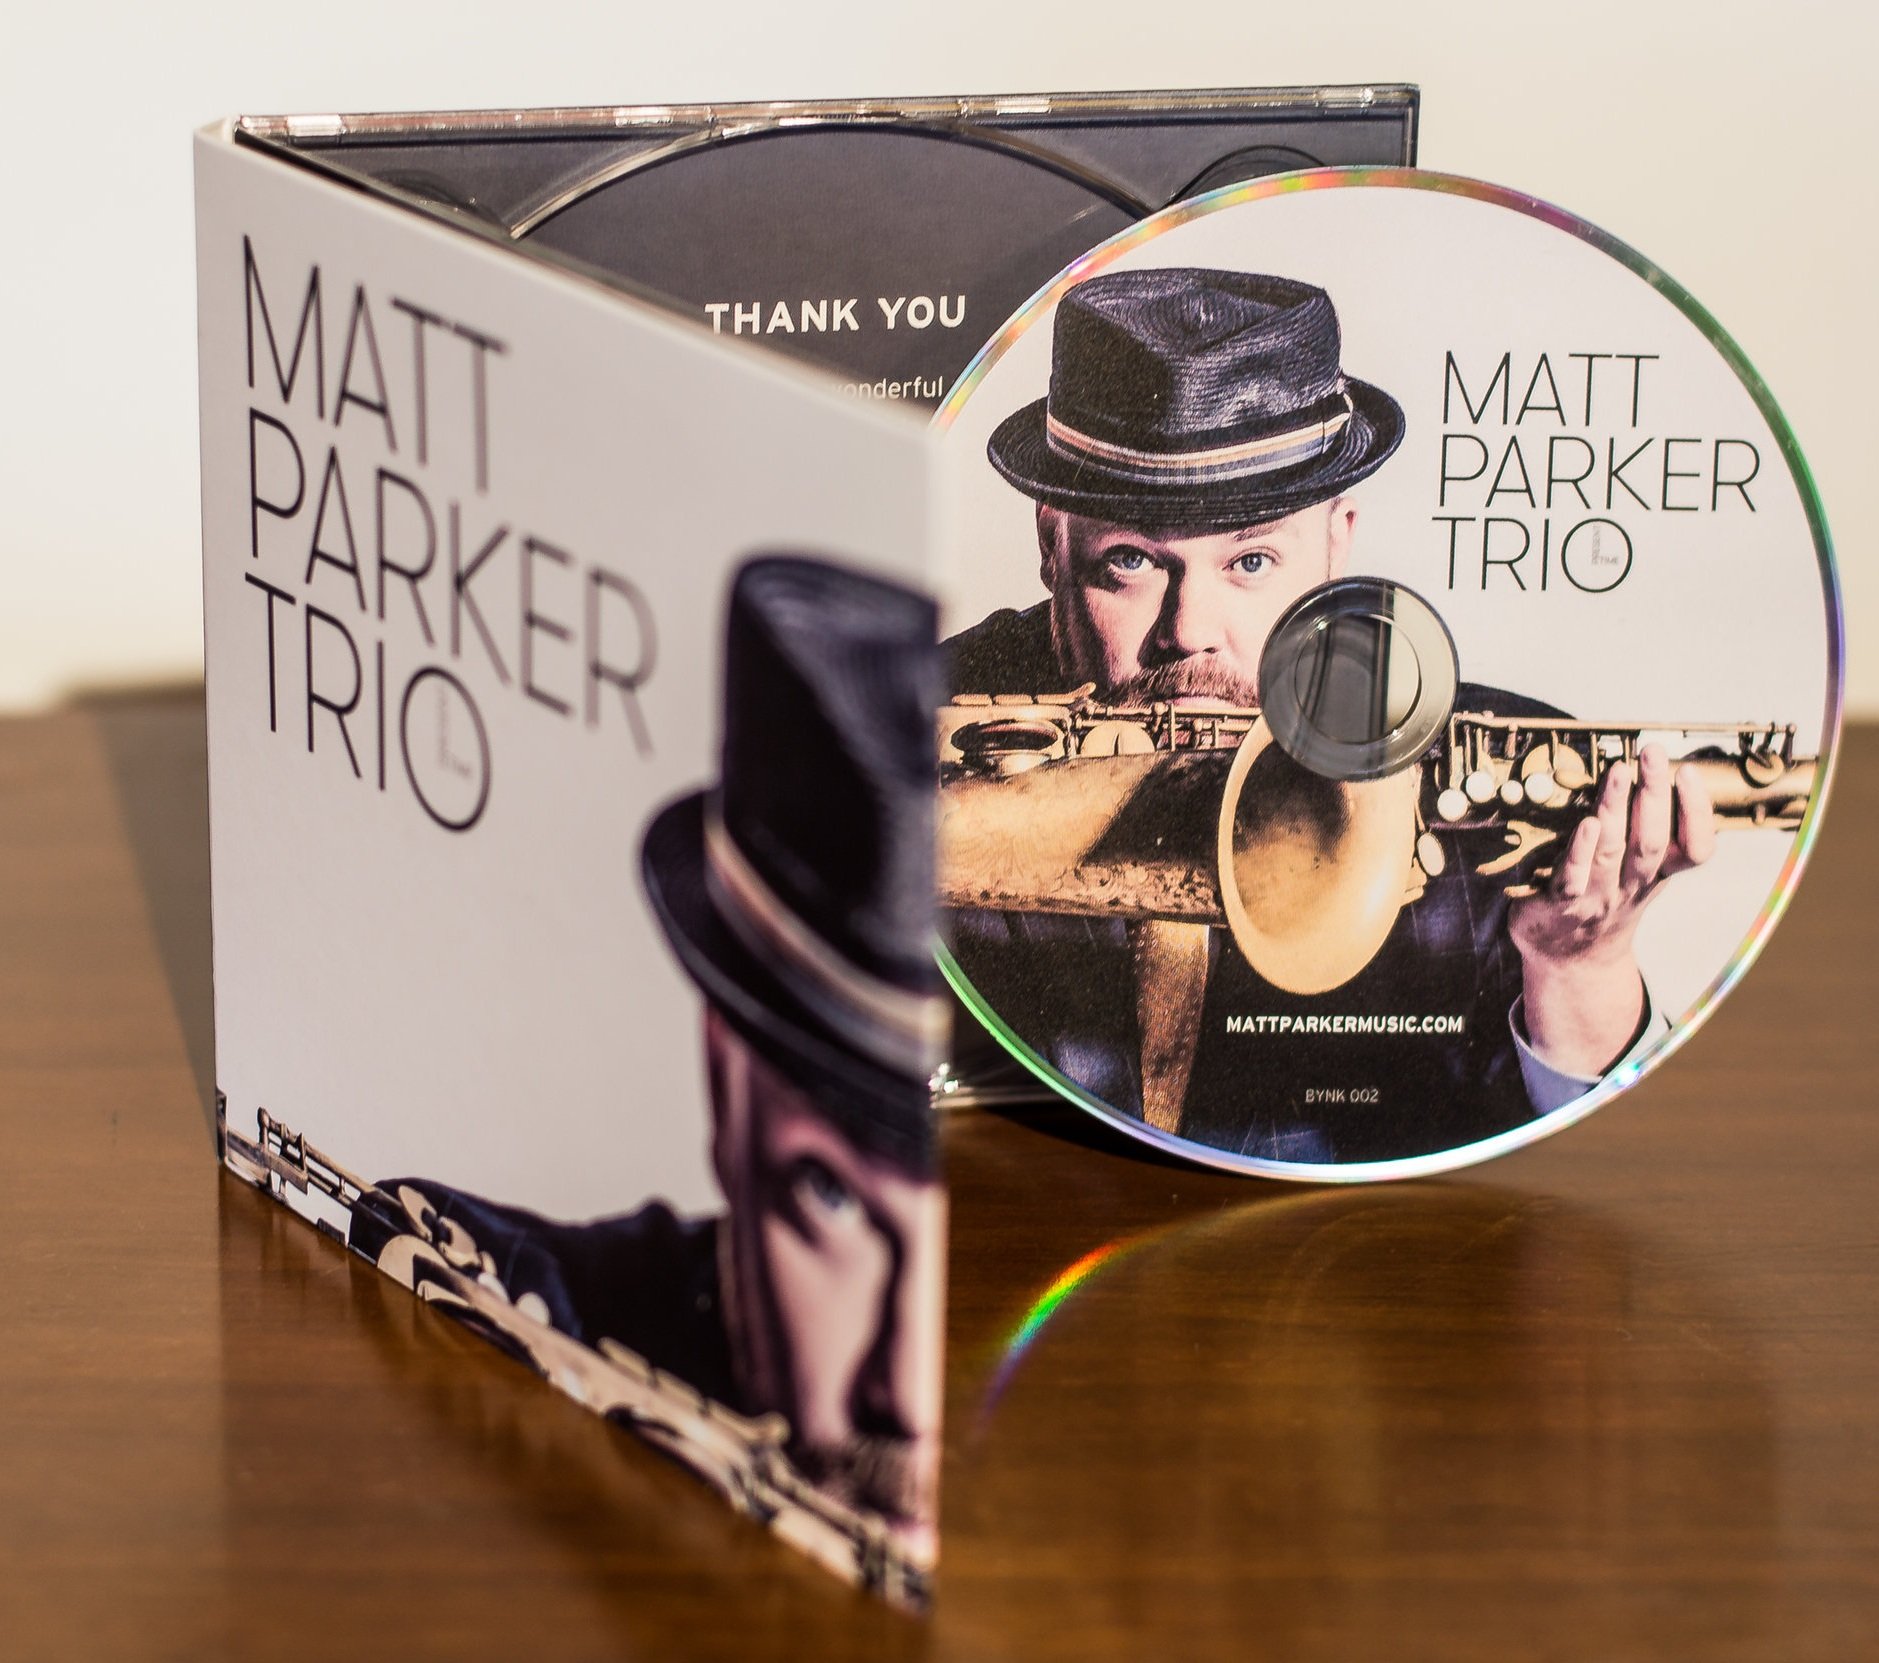 Matt Parker Trio - I wrote seven originals for my second album plus a couple i didn't write. This was so much fun to make and having special guest vocalist Emily Braden brought it to another level.